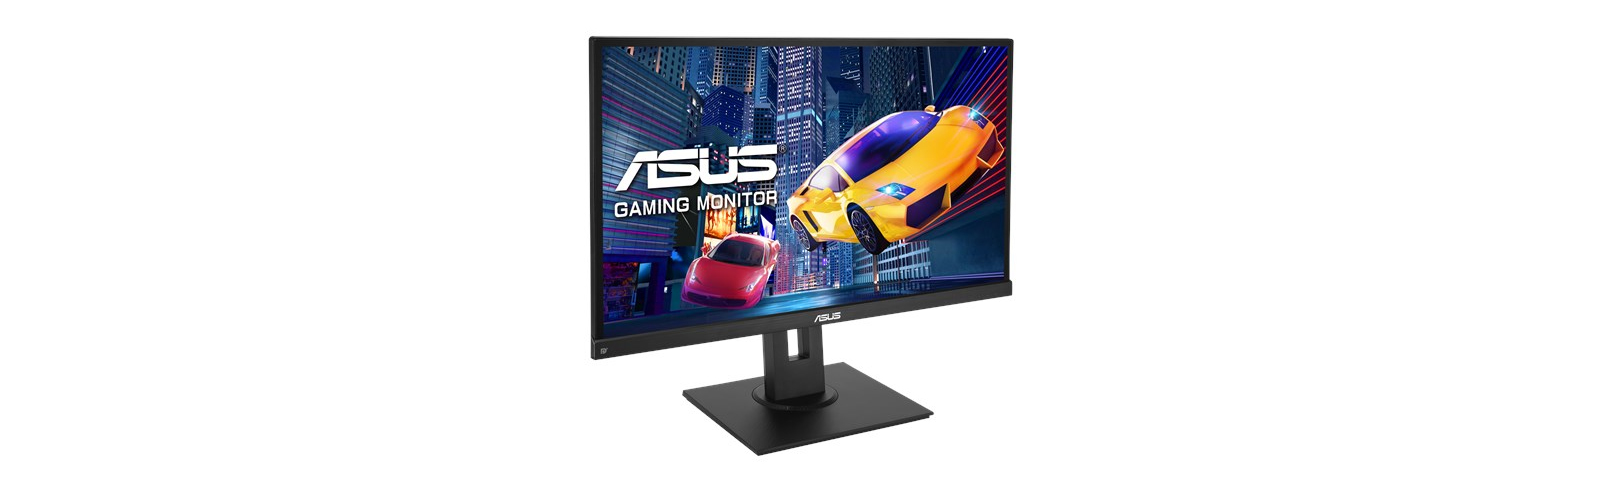 Asus VP279QGL is a 27-inch gaming monitor with frameless ergonomic design